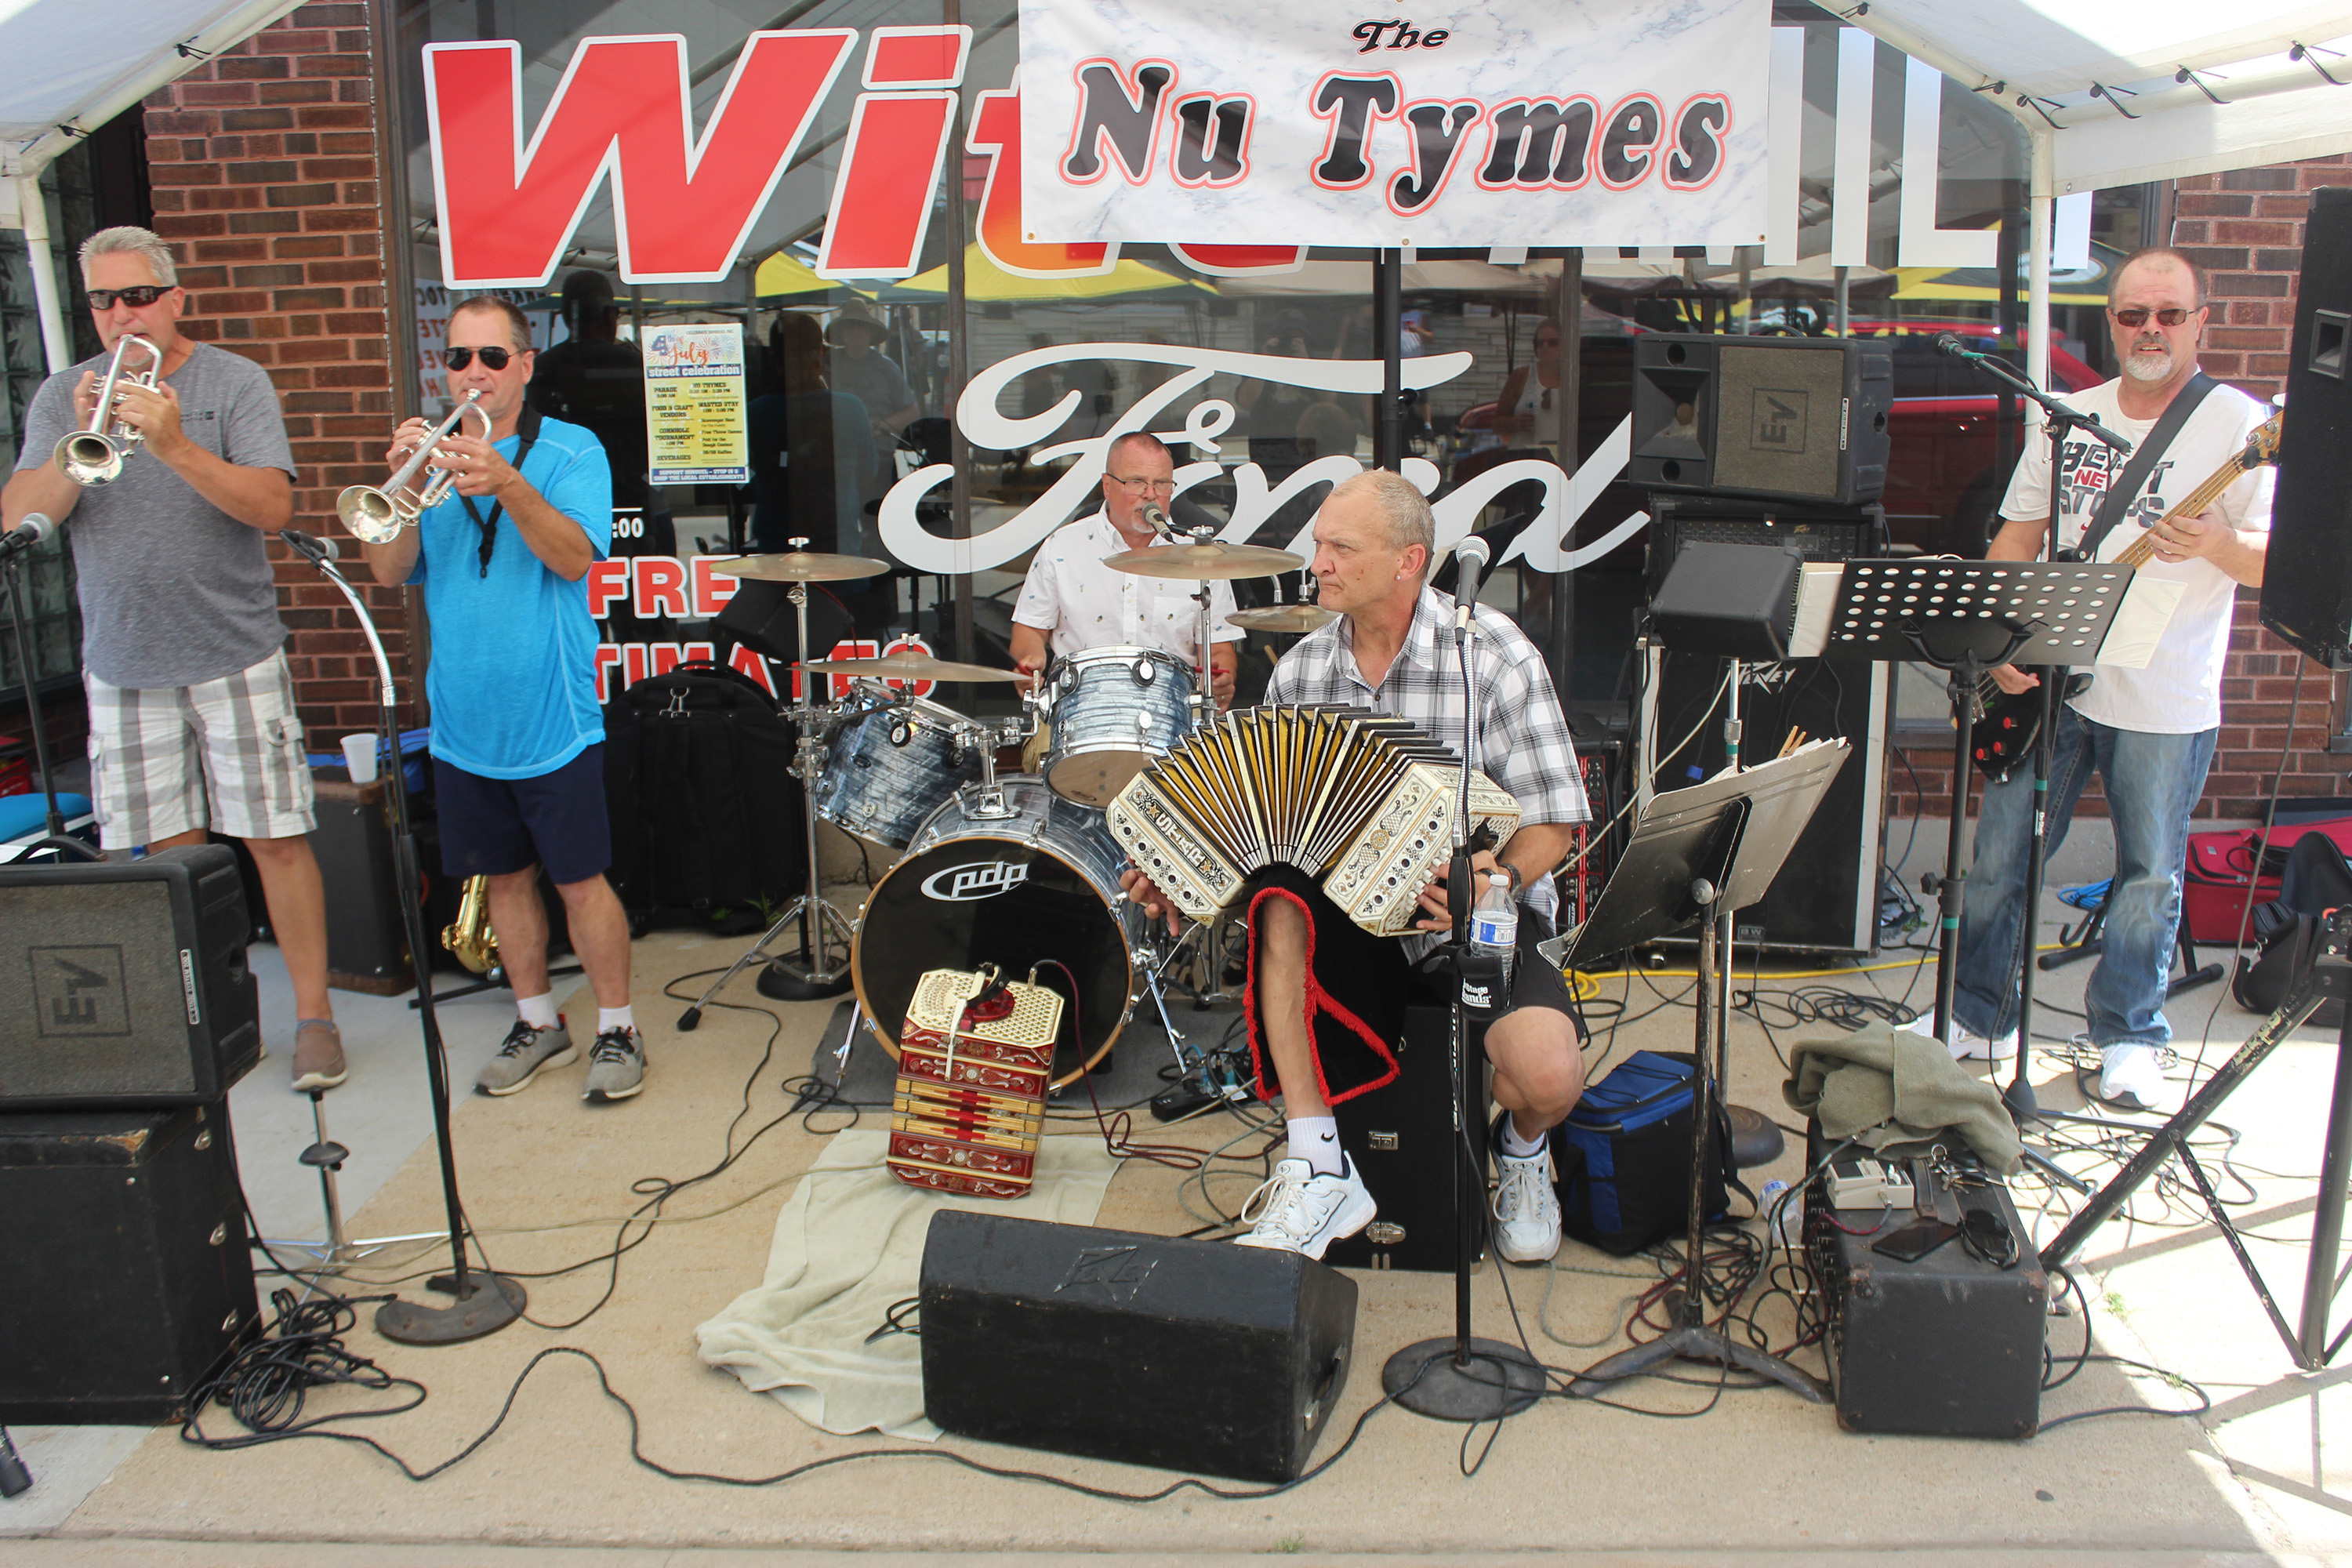 The Nu Tymes polka band, based in Pulaski, performs a song following the parade Saturday as part of a street fair in downtown Bonduel. The street fair was held as an alternative to the usual activities in Village Park.Lee Pulaski | NEW Media